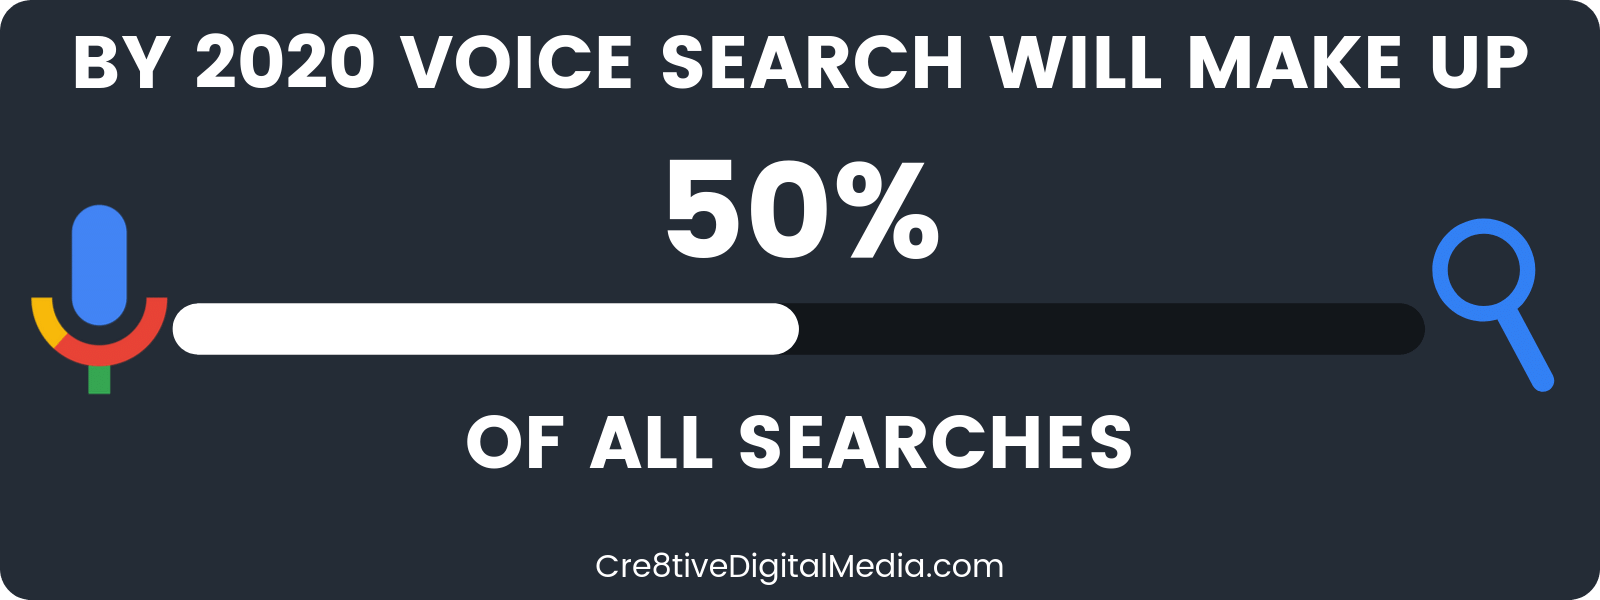 Percent of all searches as voice search in 2020